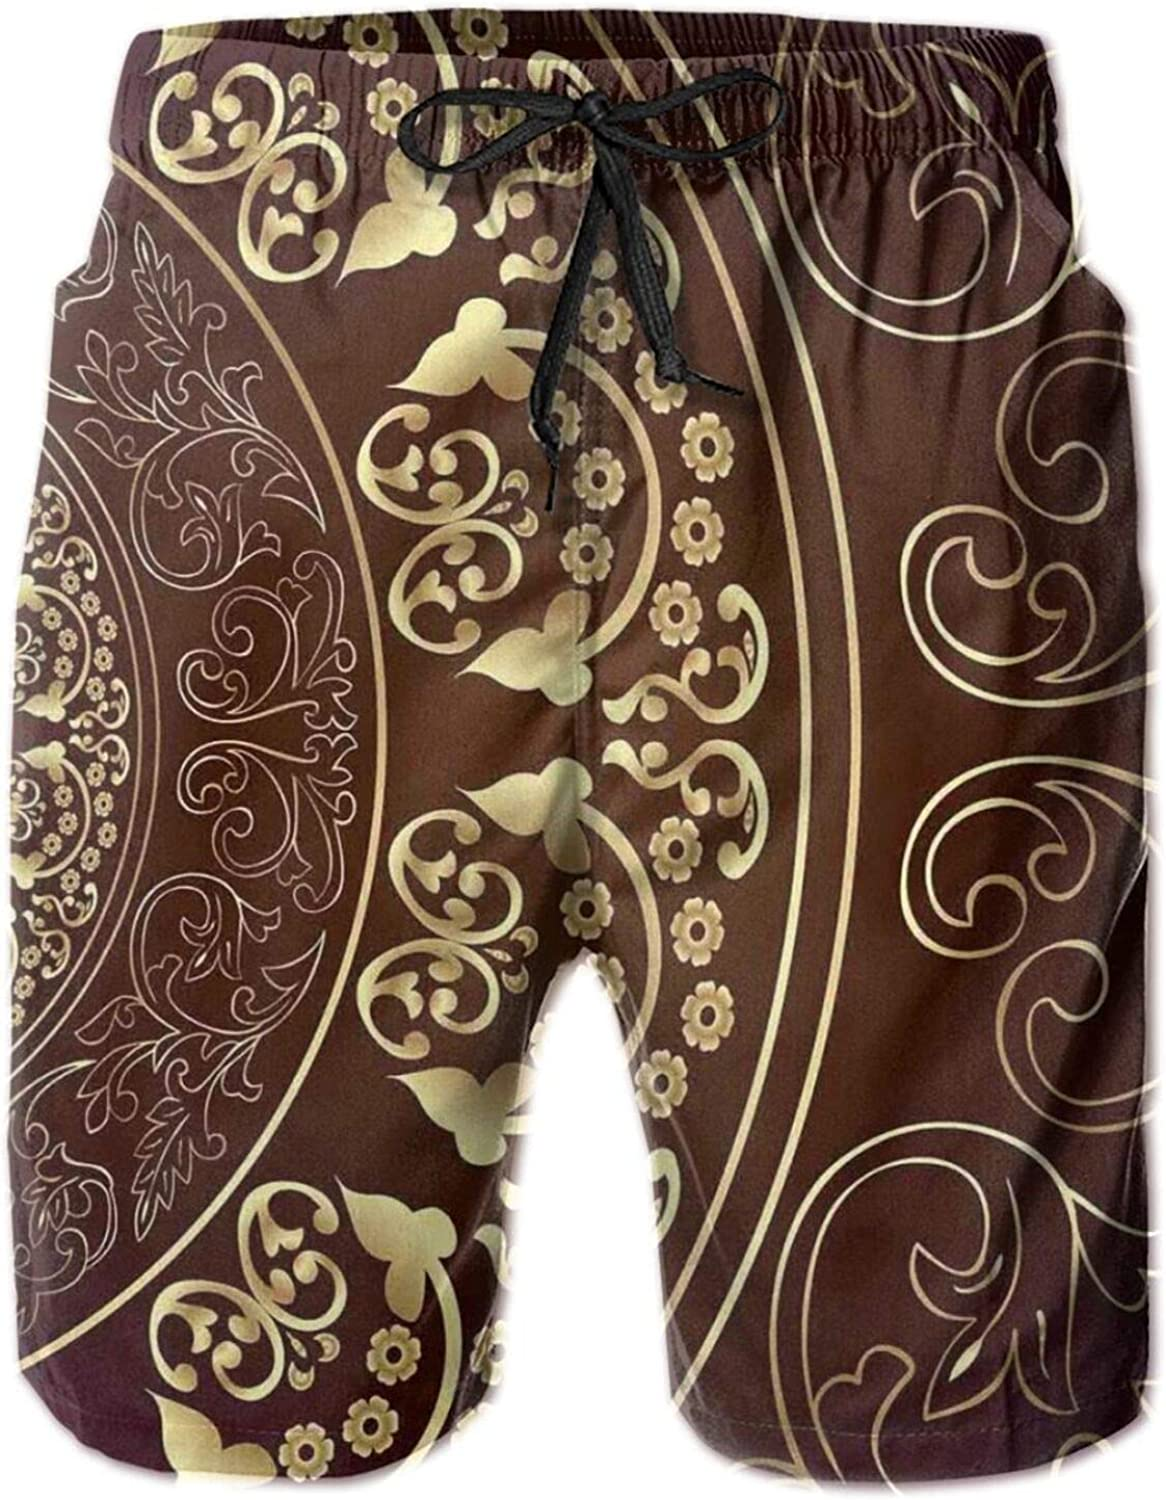 Vintage Ethnic Ancient Cosmos Pattern with Swirled Floral Leaves Artwork Printed Beach Shorts for Men Swim Trucks Mesh Lining,M